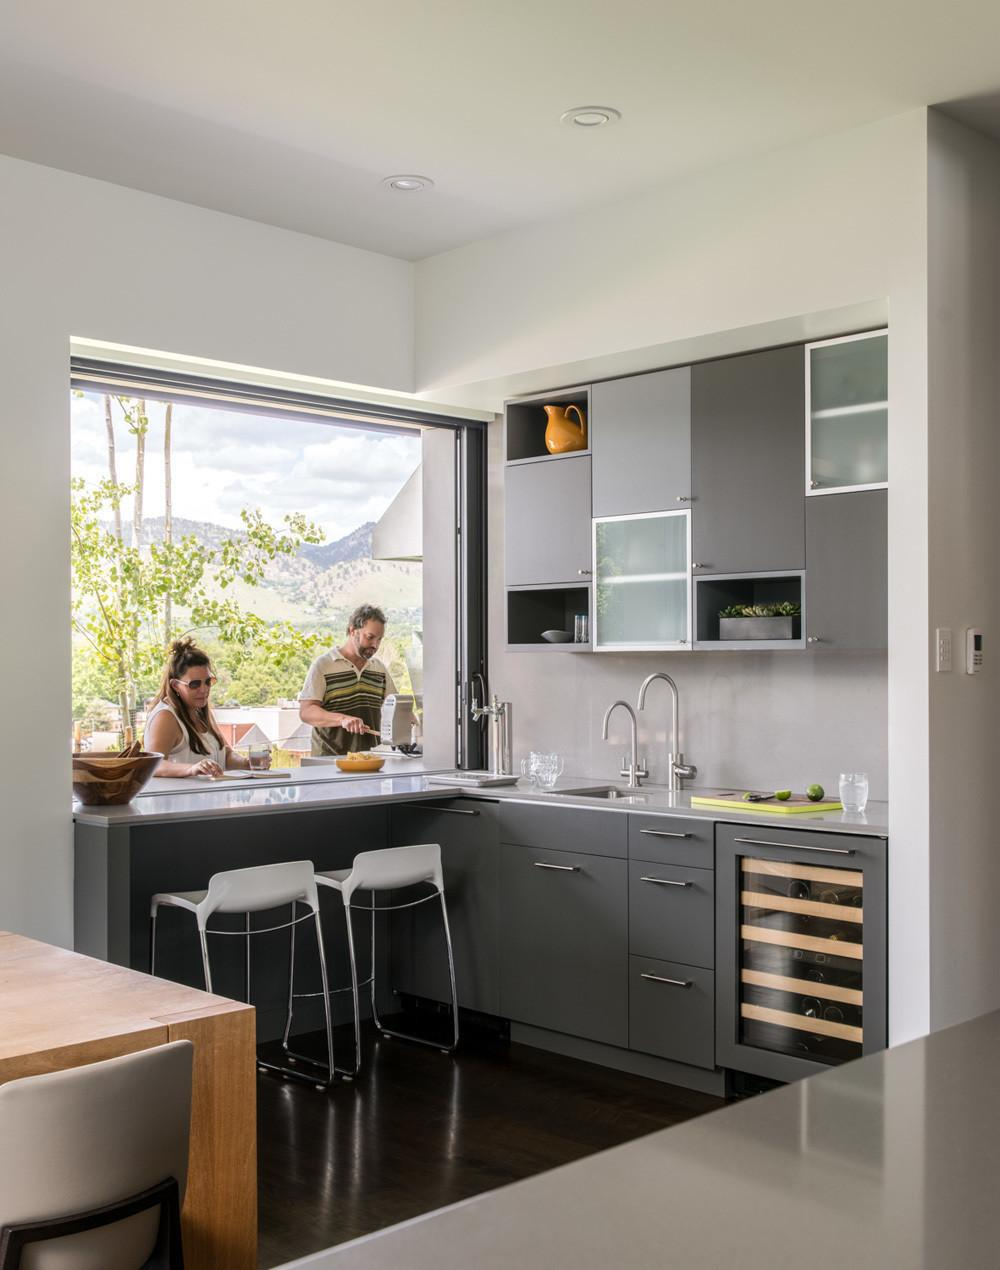 Top Kitchen Pass Through Window Outside Nice Home Design